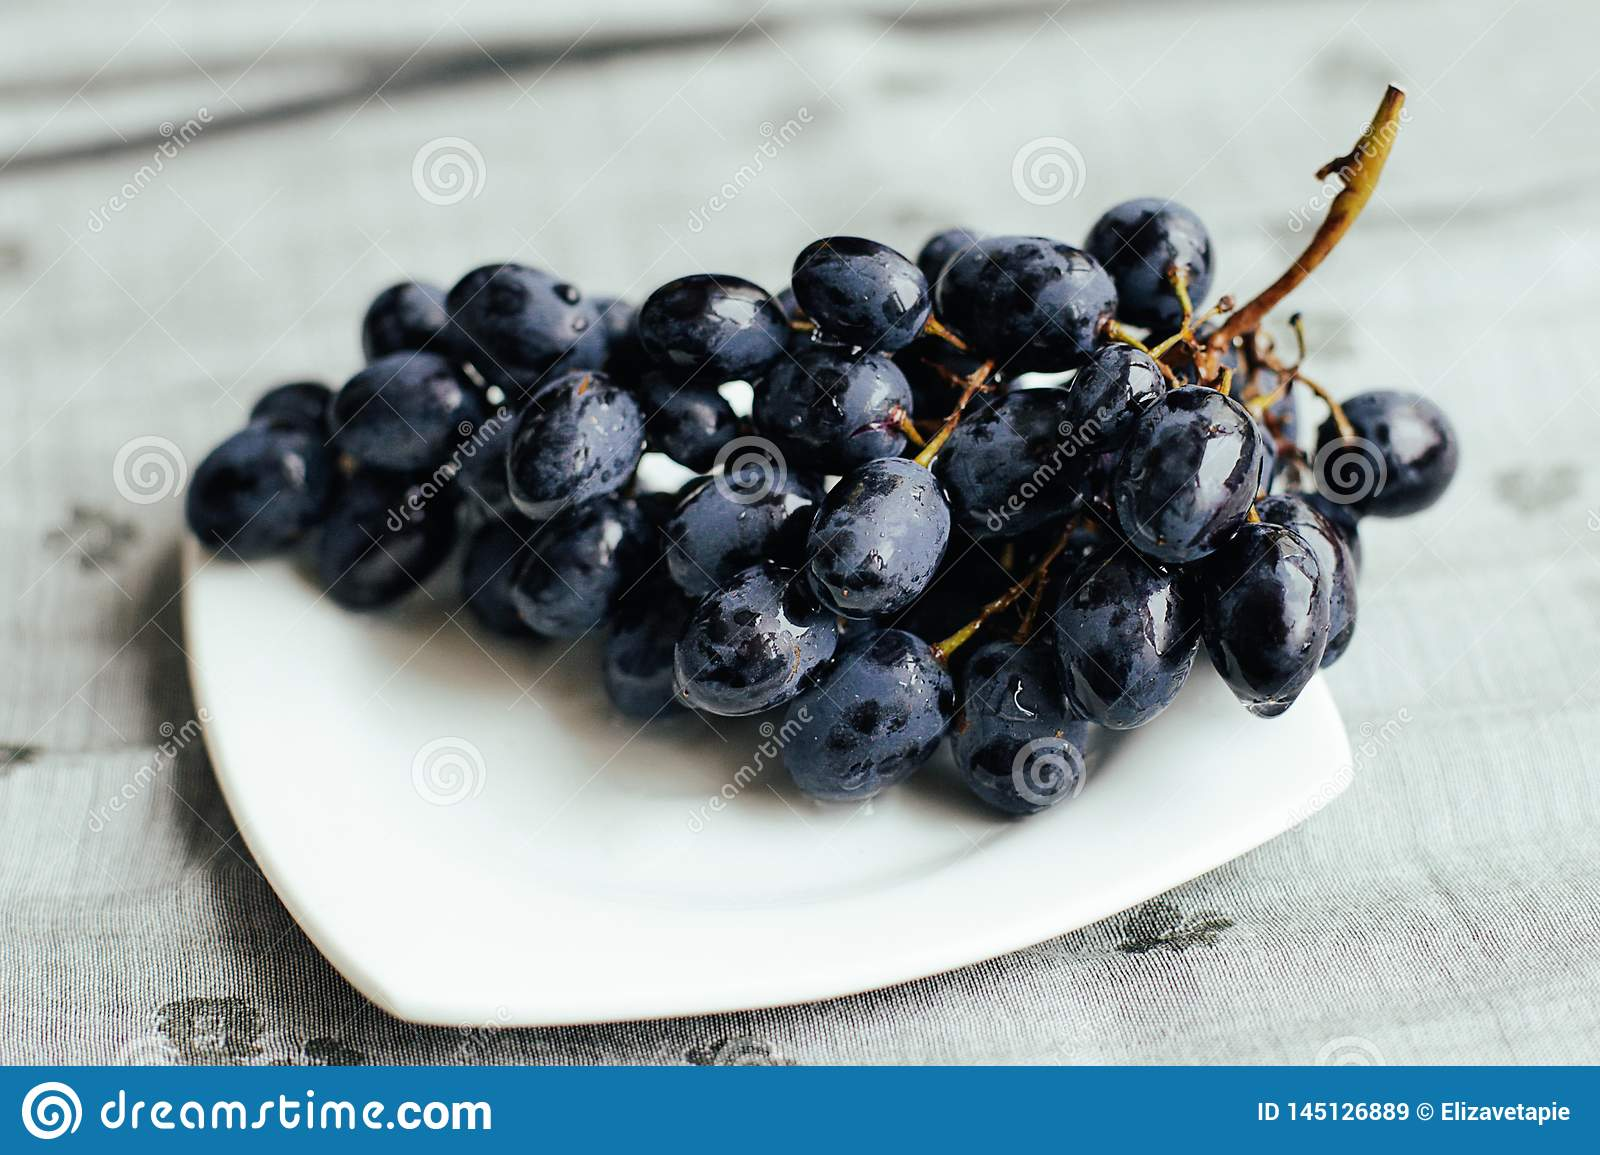 Juicy blue grapes